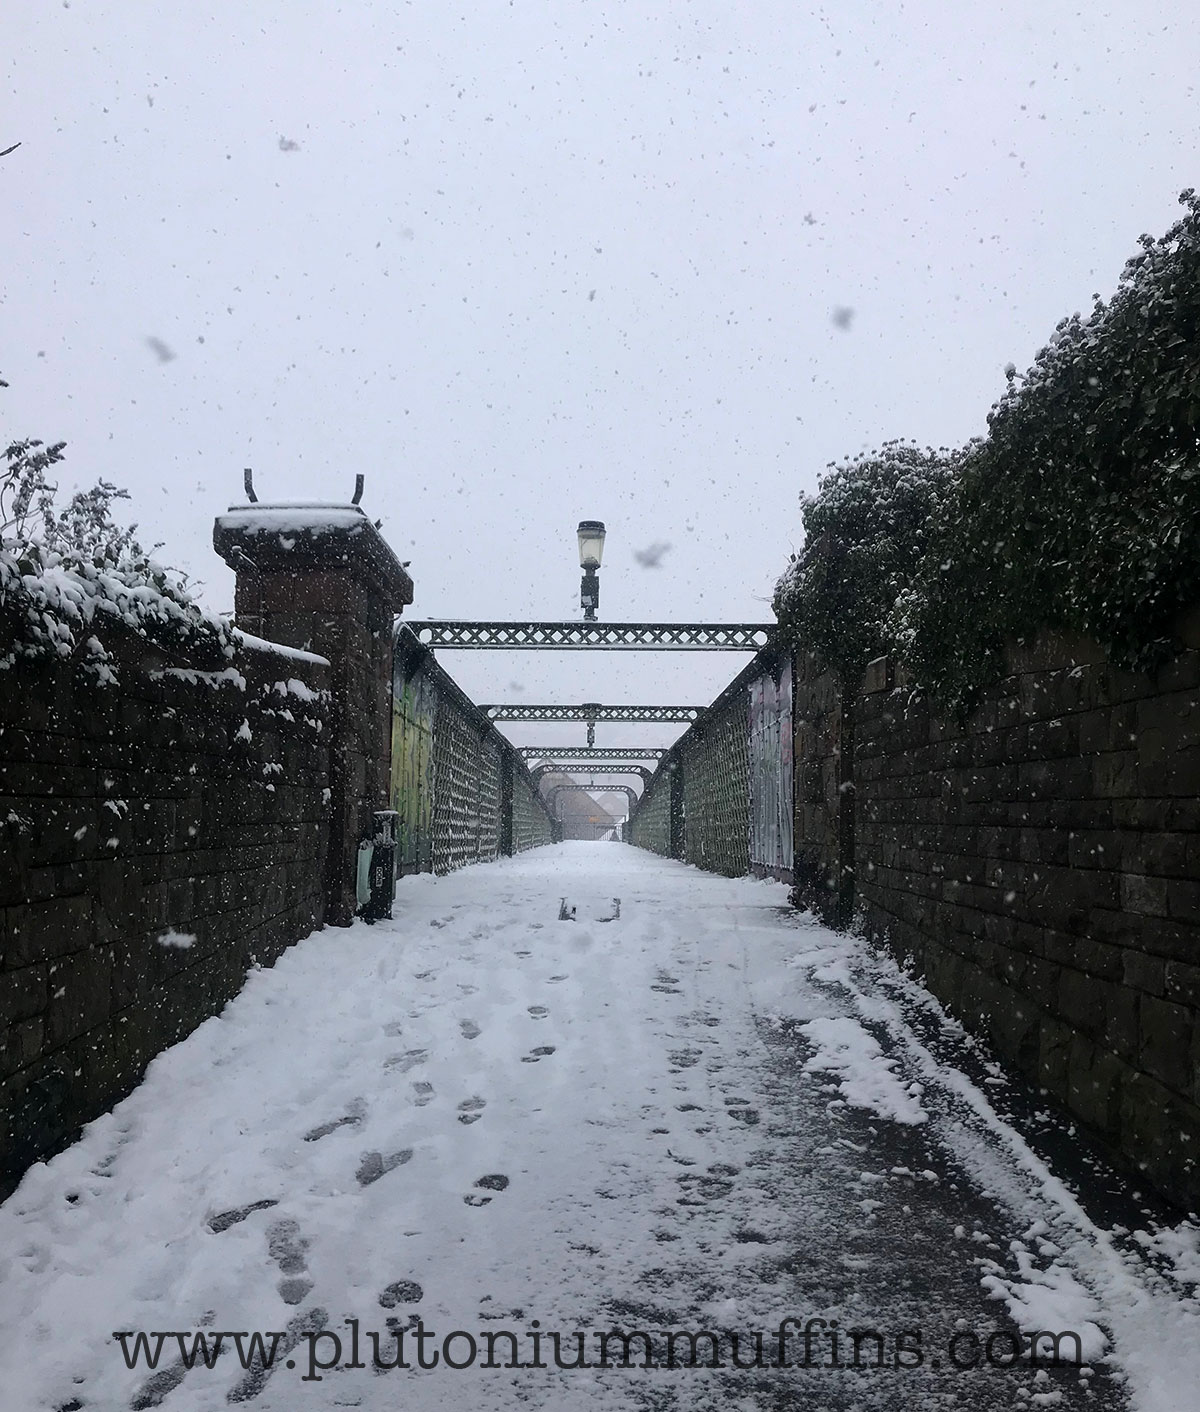 A bridge with a Narnia style lamp on the top, heavy snow falling.